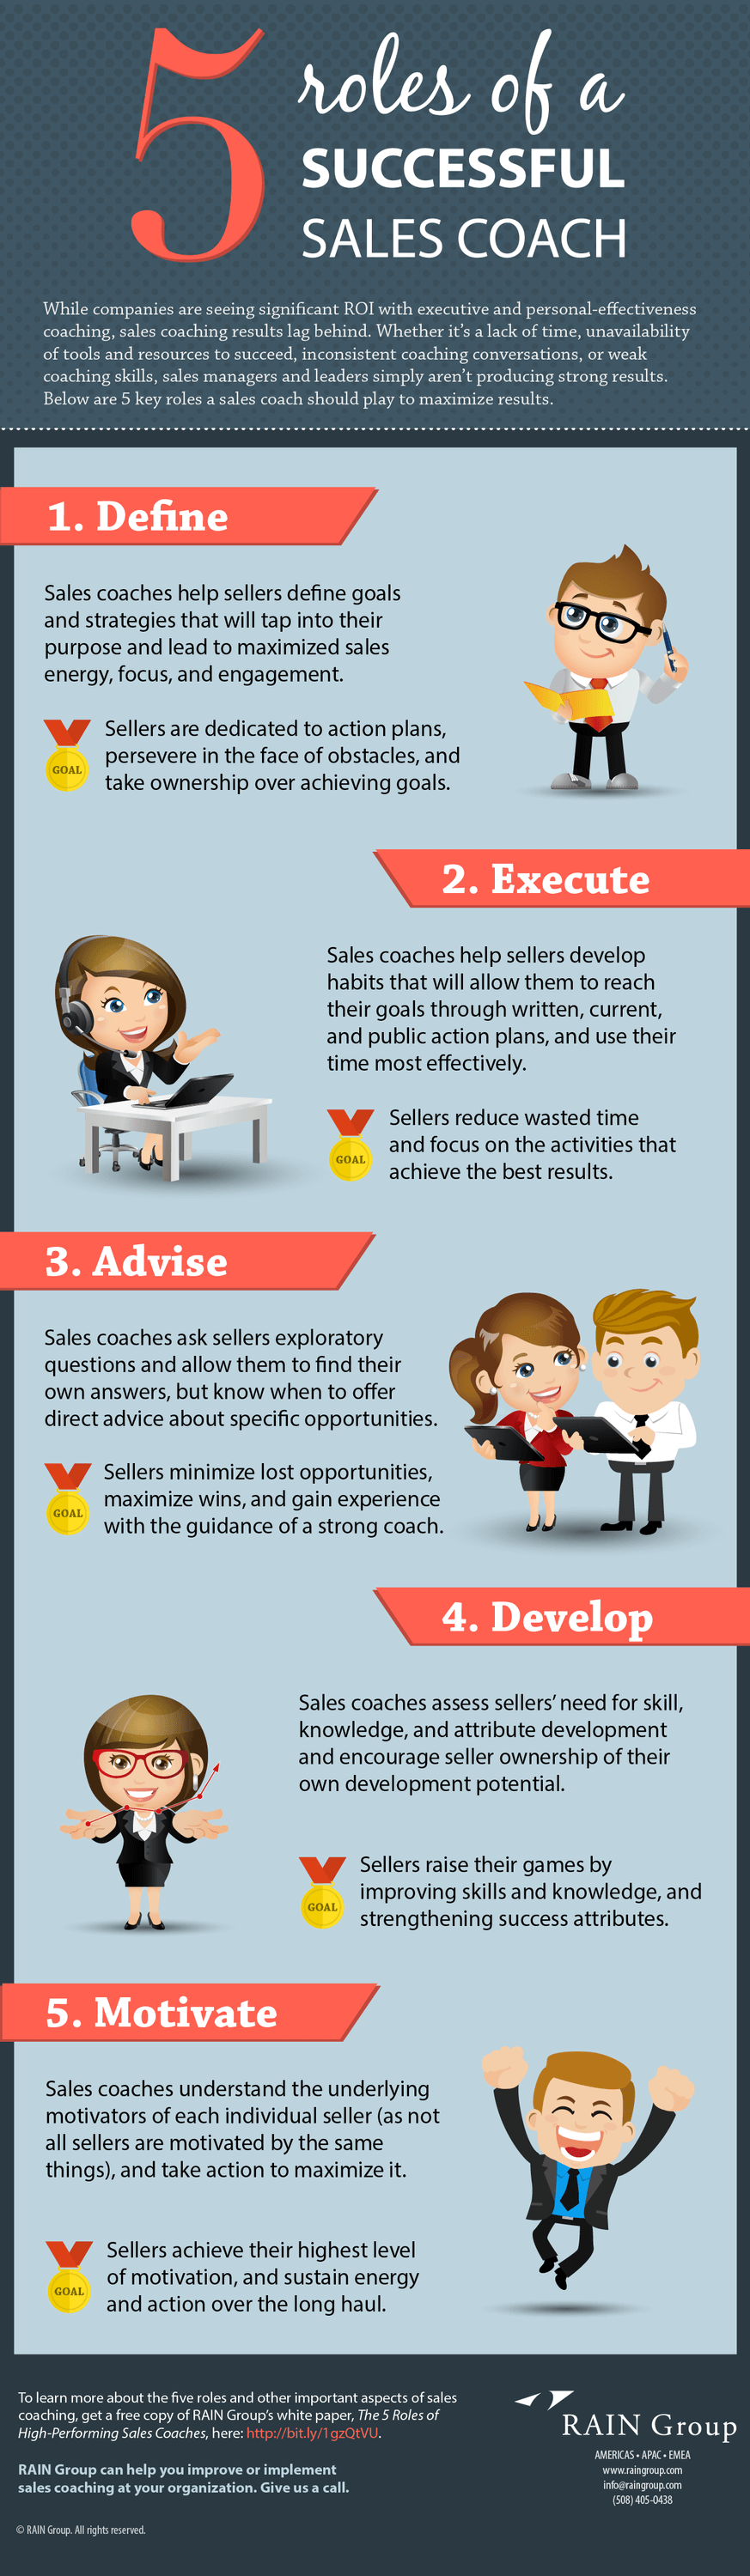 5 Roles of a Successful Sales Coach